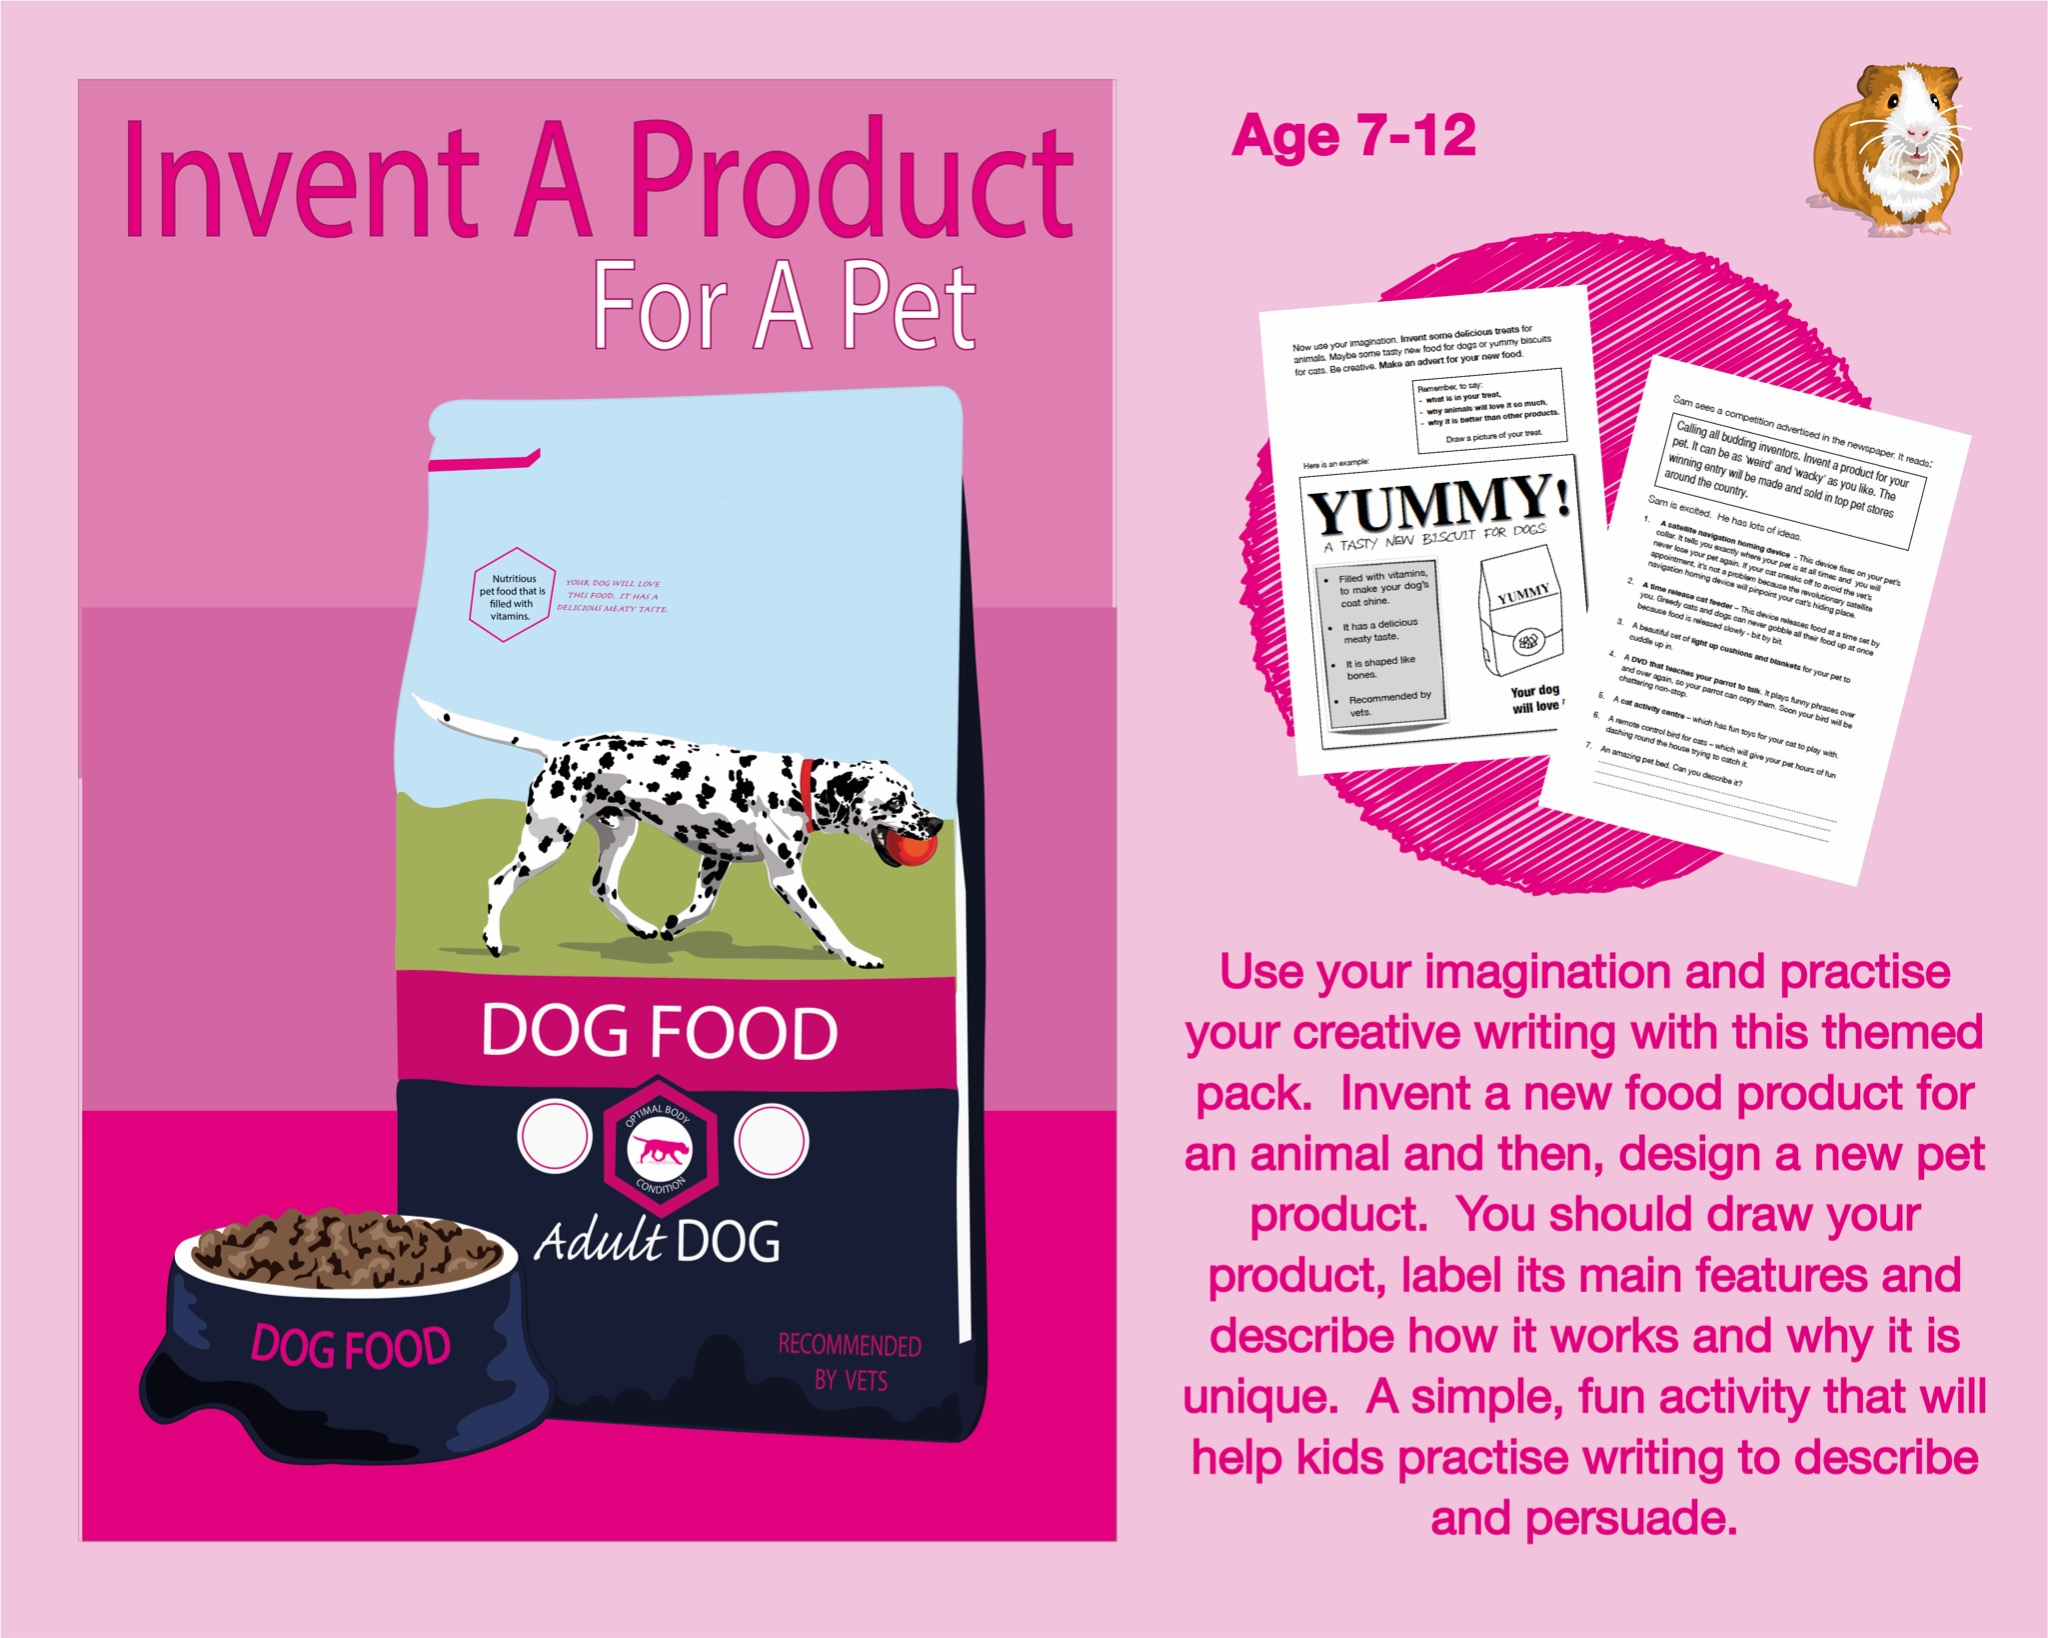 Invent A Product For A Pet (7-12 years)